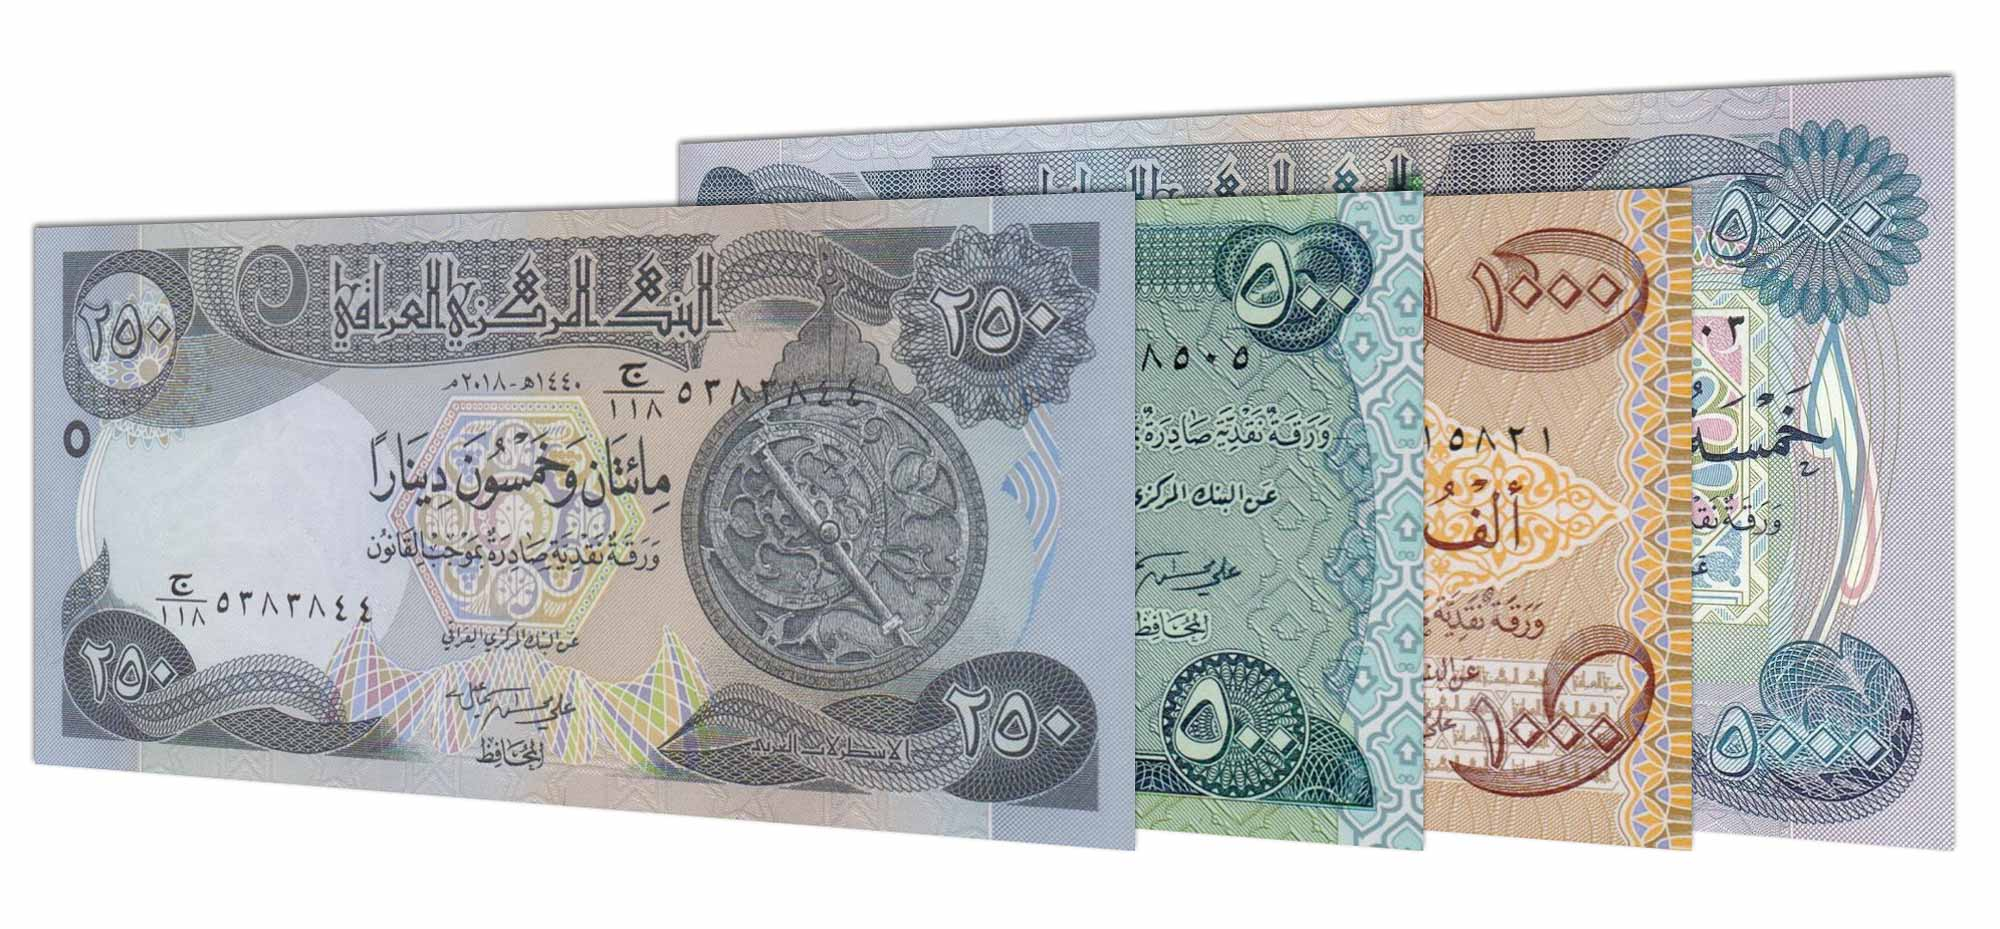 Iraqi Dinars Online Iqd Delivered